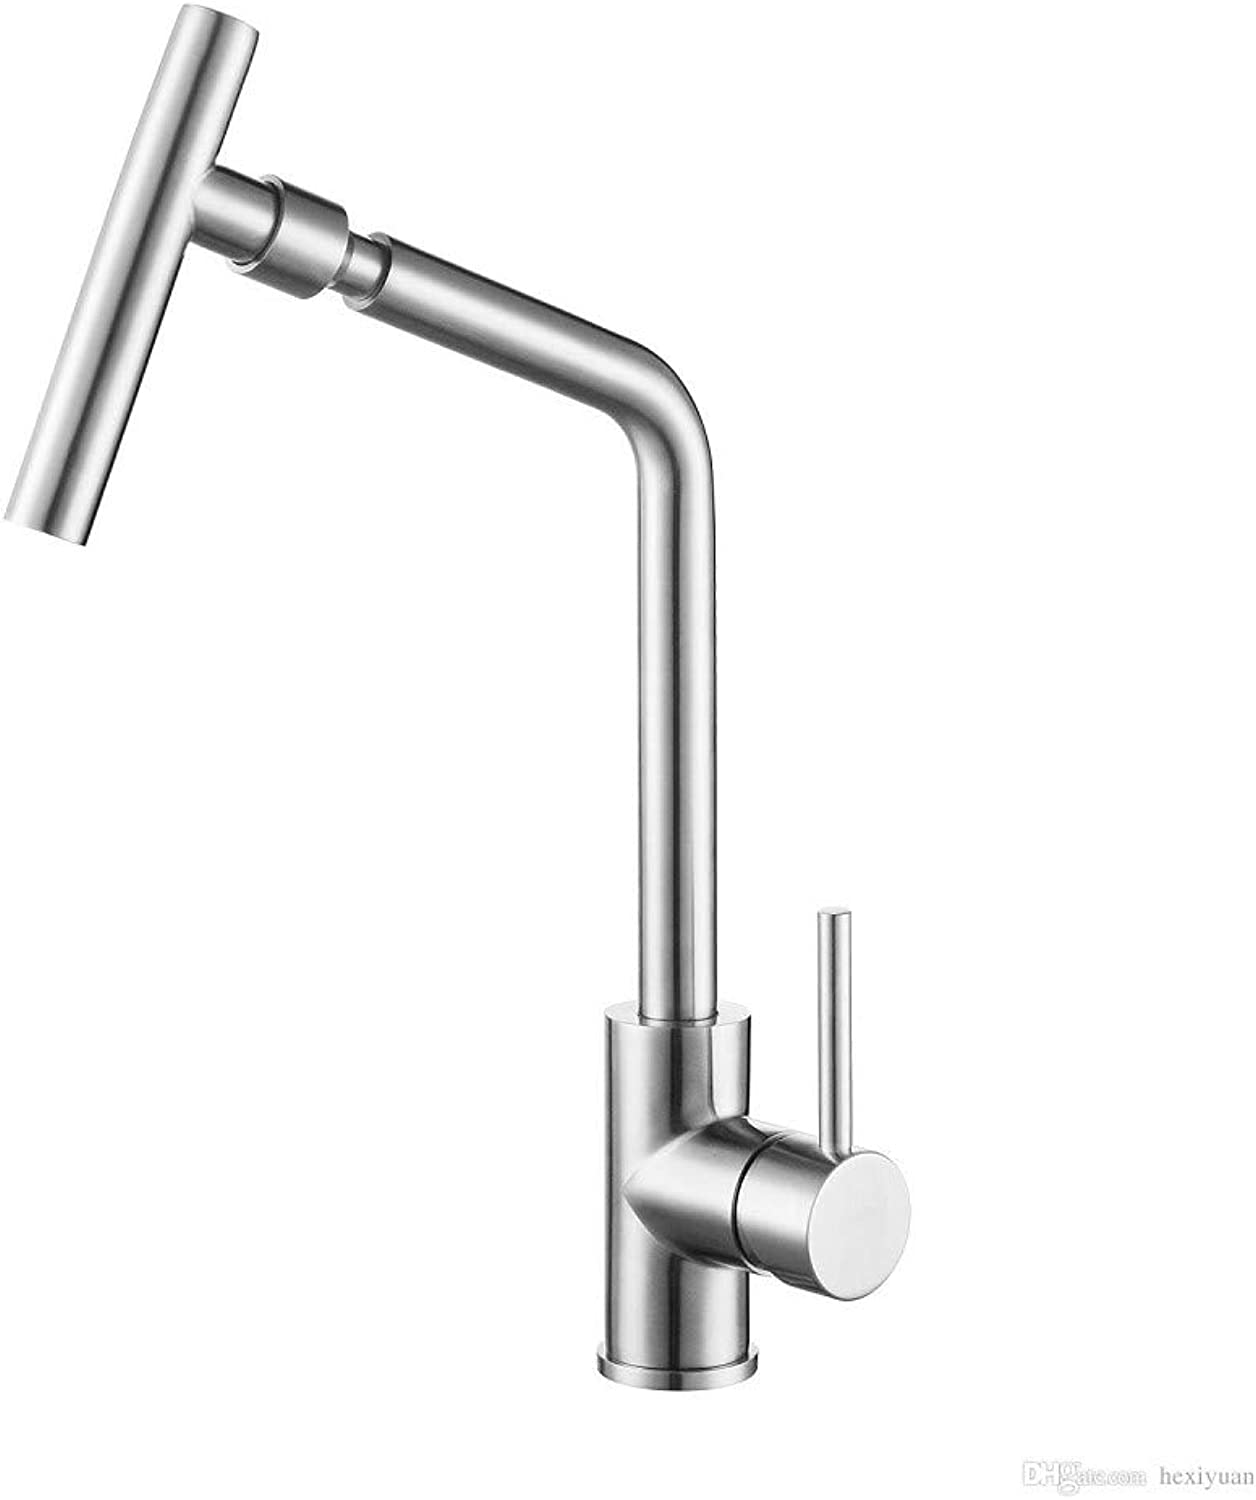 Decorry 304 Stainless Steel Kitchen Faucet Universal Swivel Sink Faucet